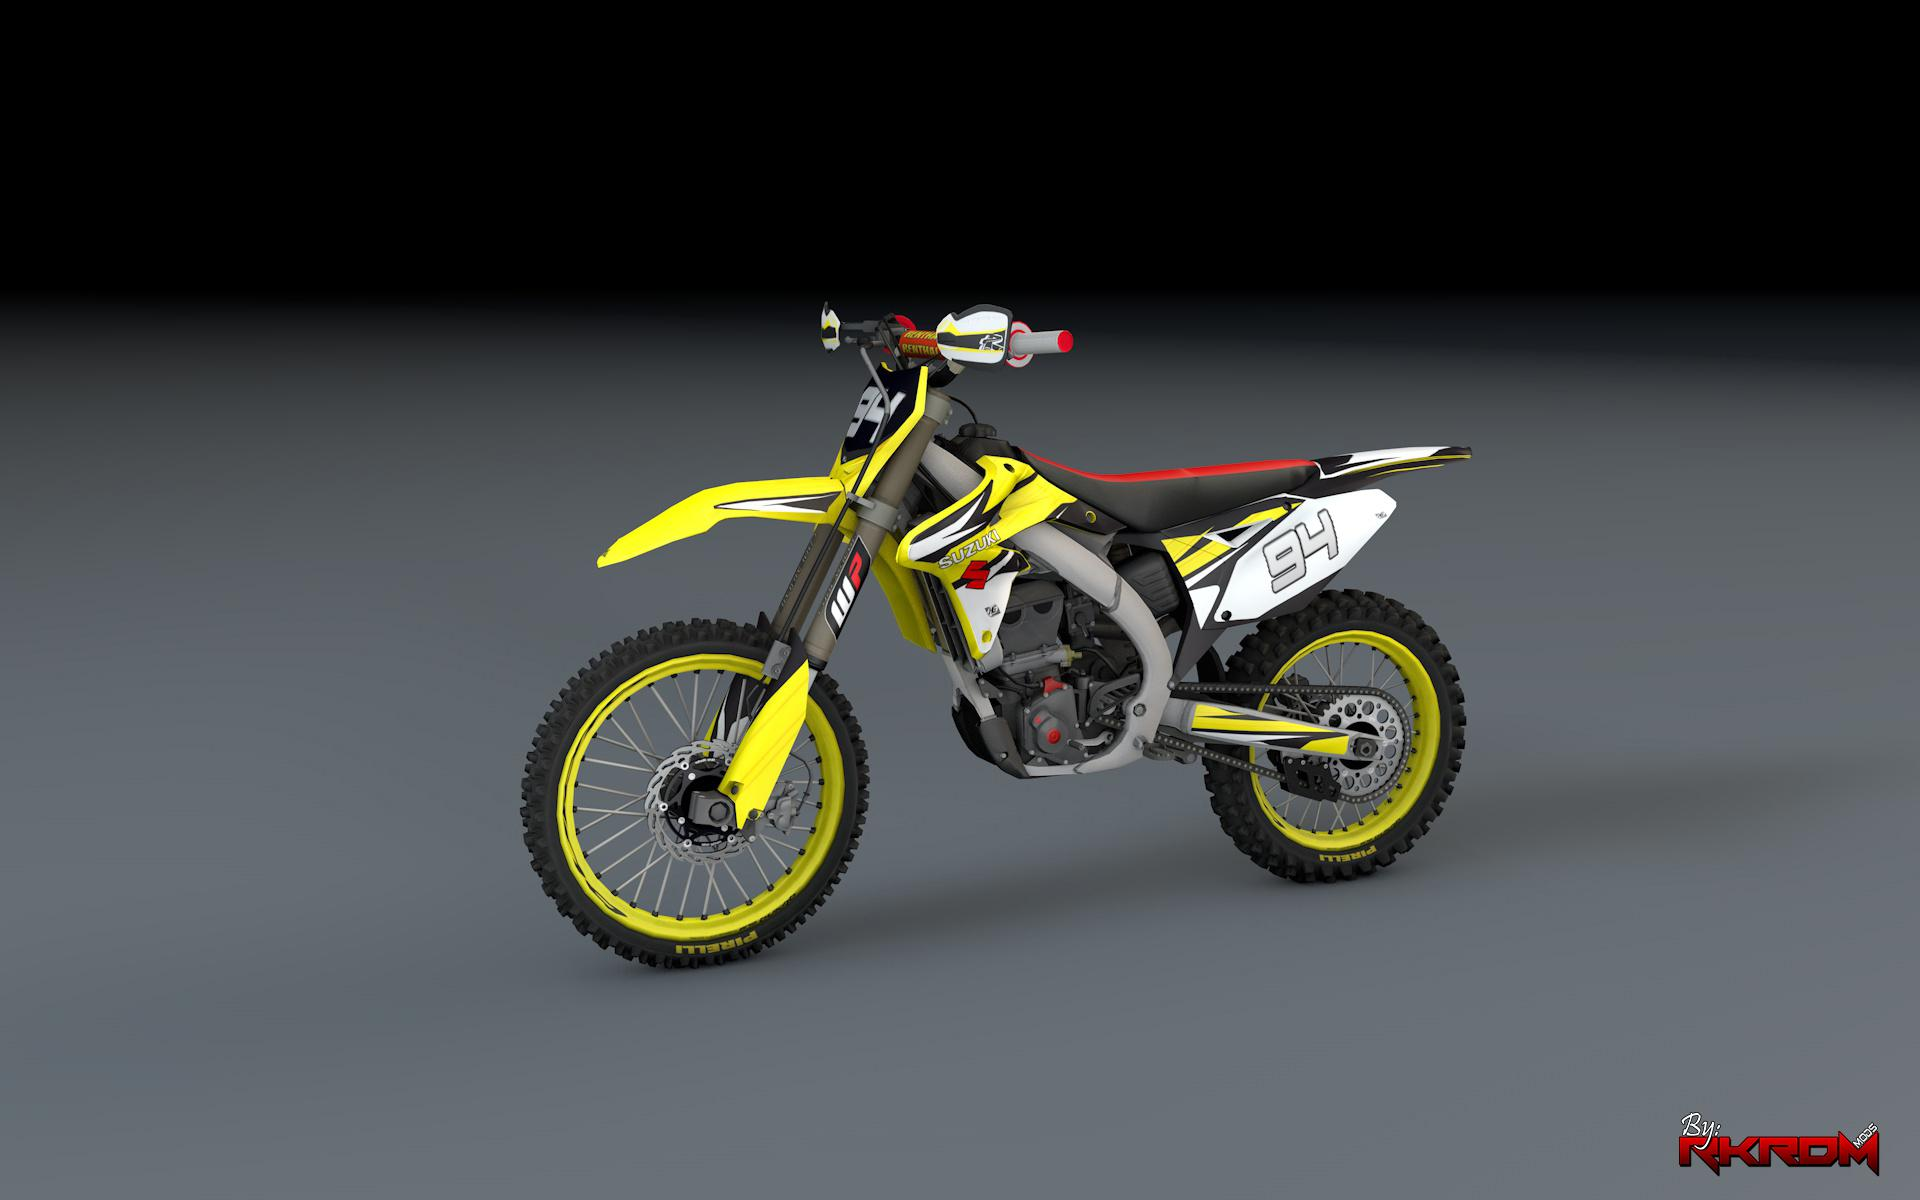 2015 suzuki rmz 250 version 2 gta5. Black Bedroom Furniture Sets. Home Design Ideas